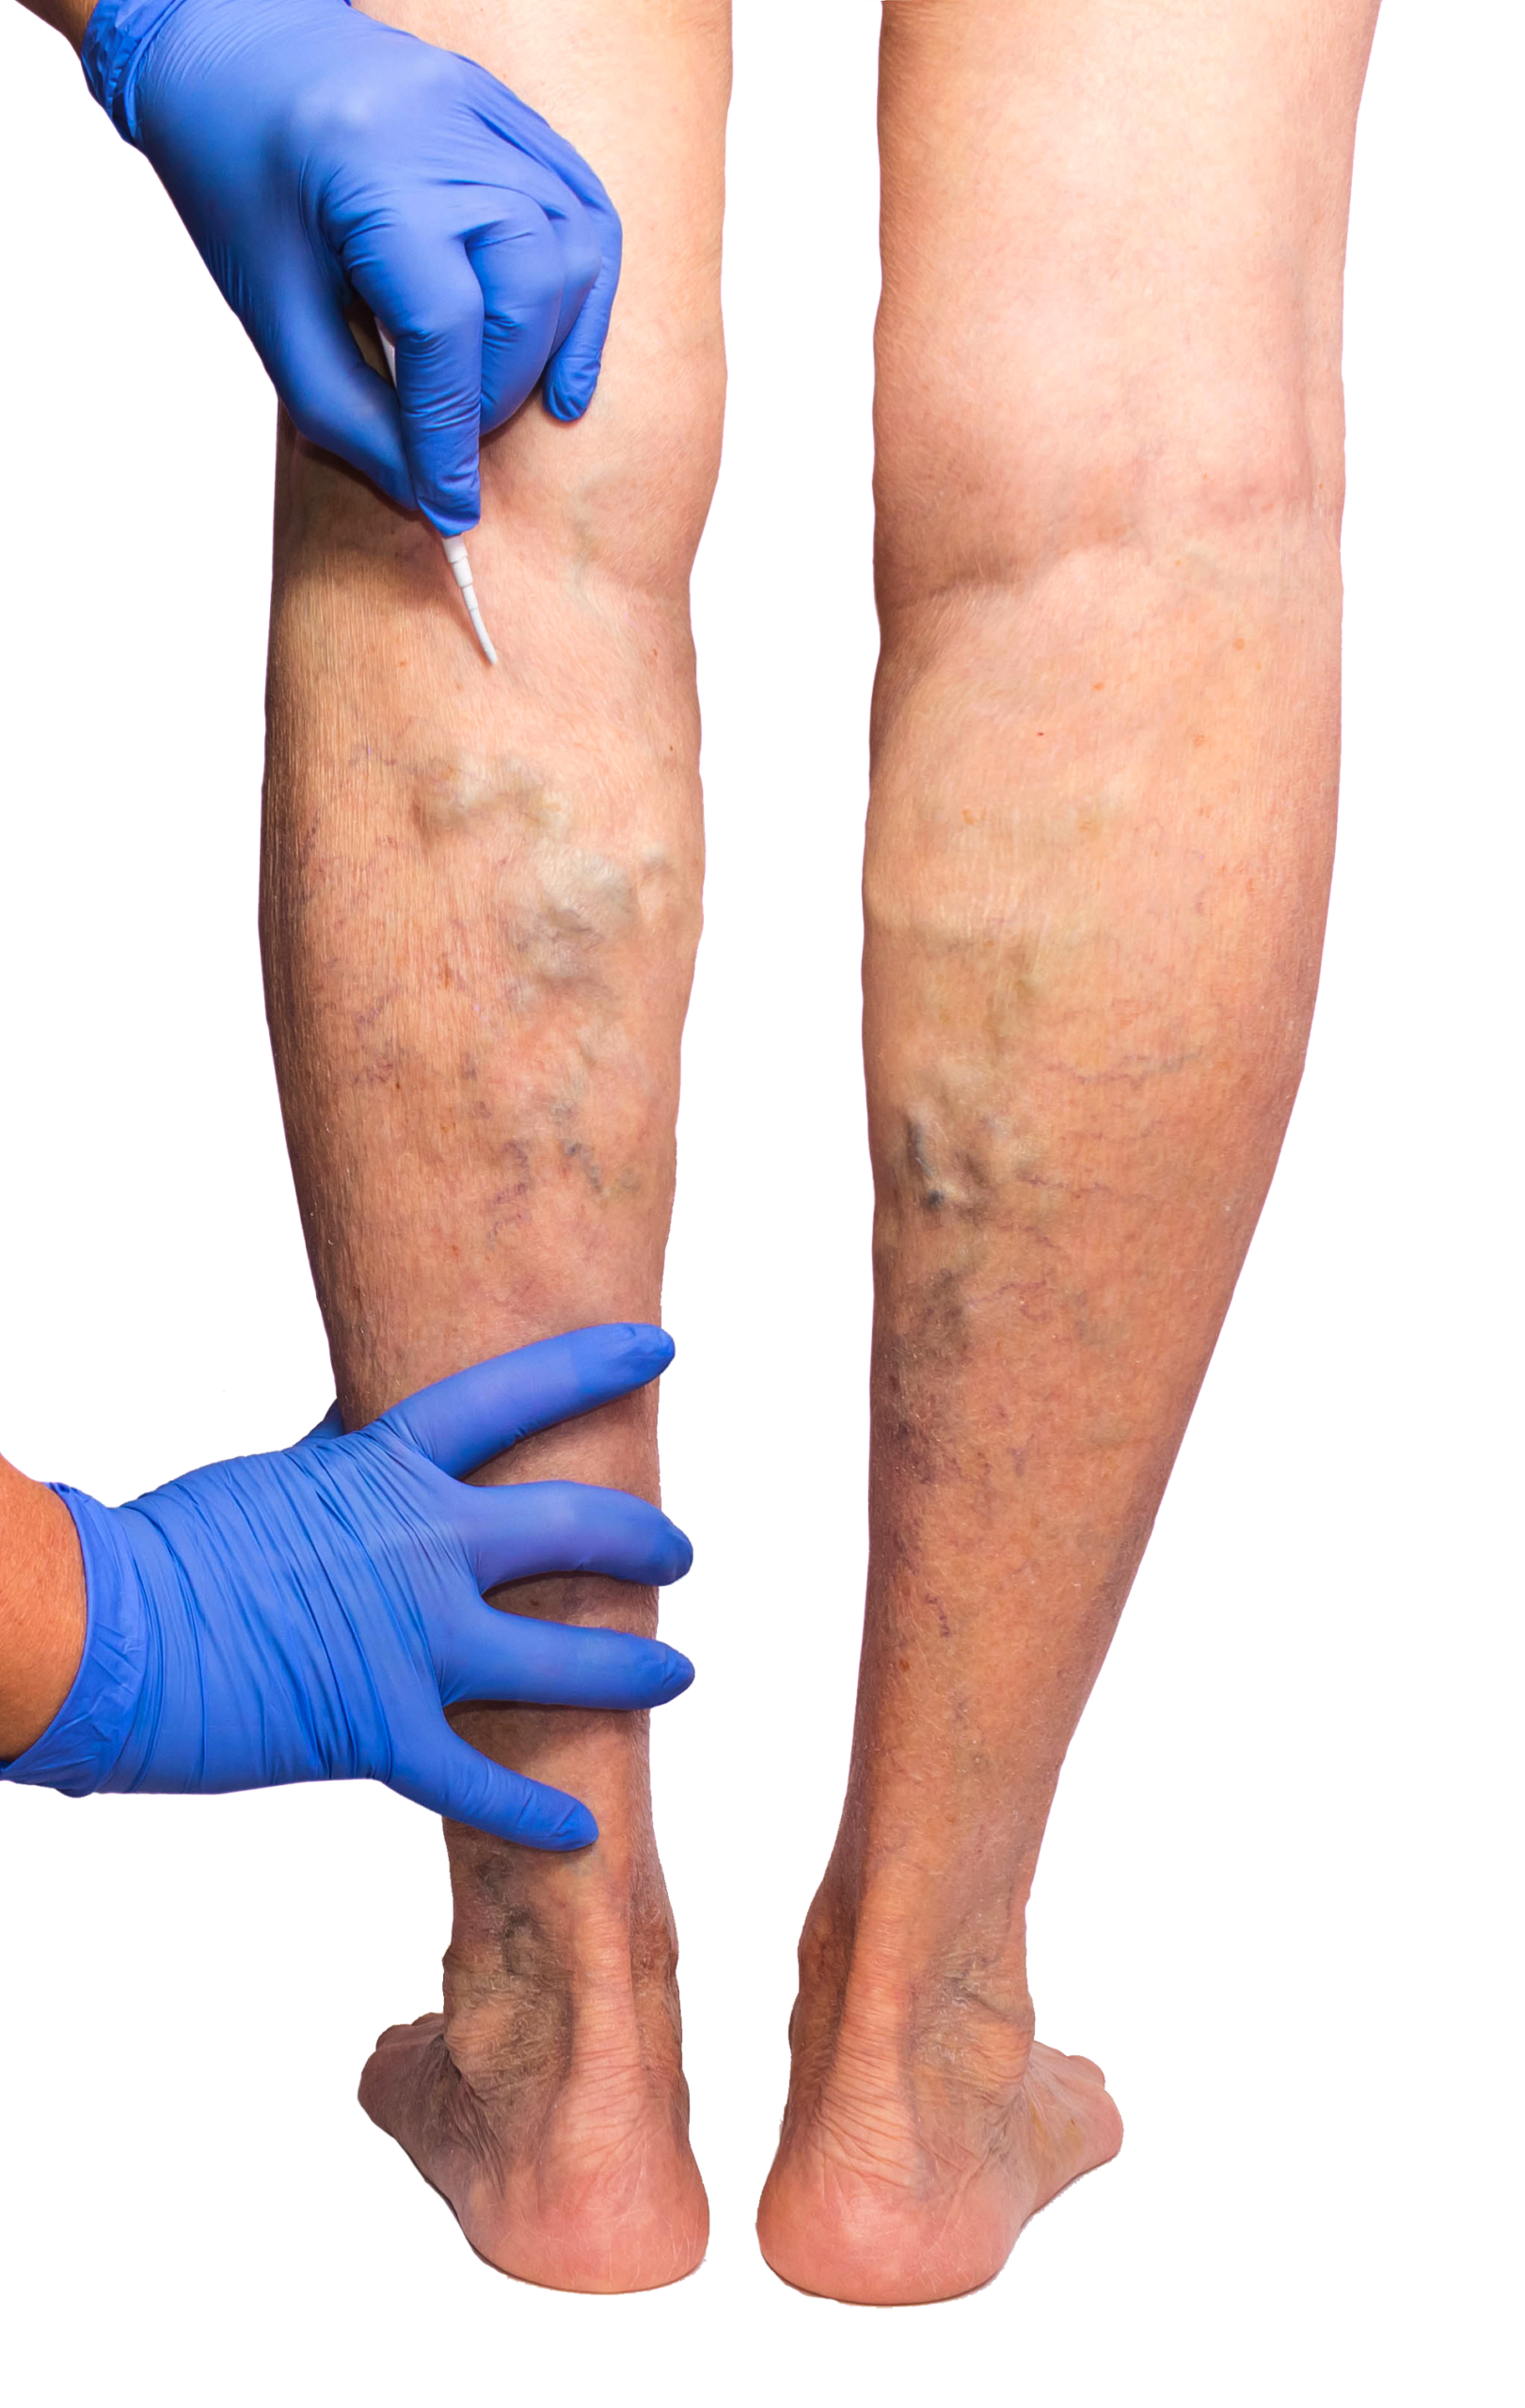 Dr. Todd Kobrinski is the best vein doctor in Newark, NJ, specializing in the latest minimally invasive treatments. In this article, our vein center discusses varicose veins and spider veins.